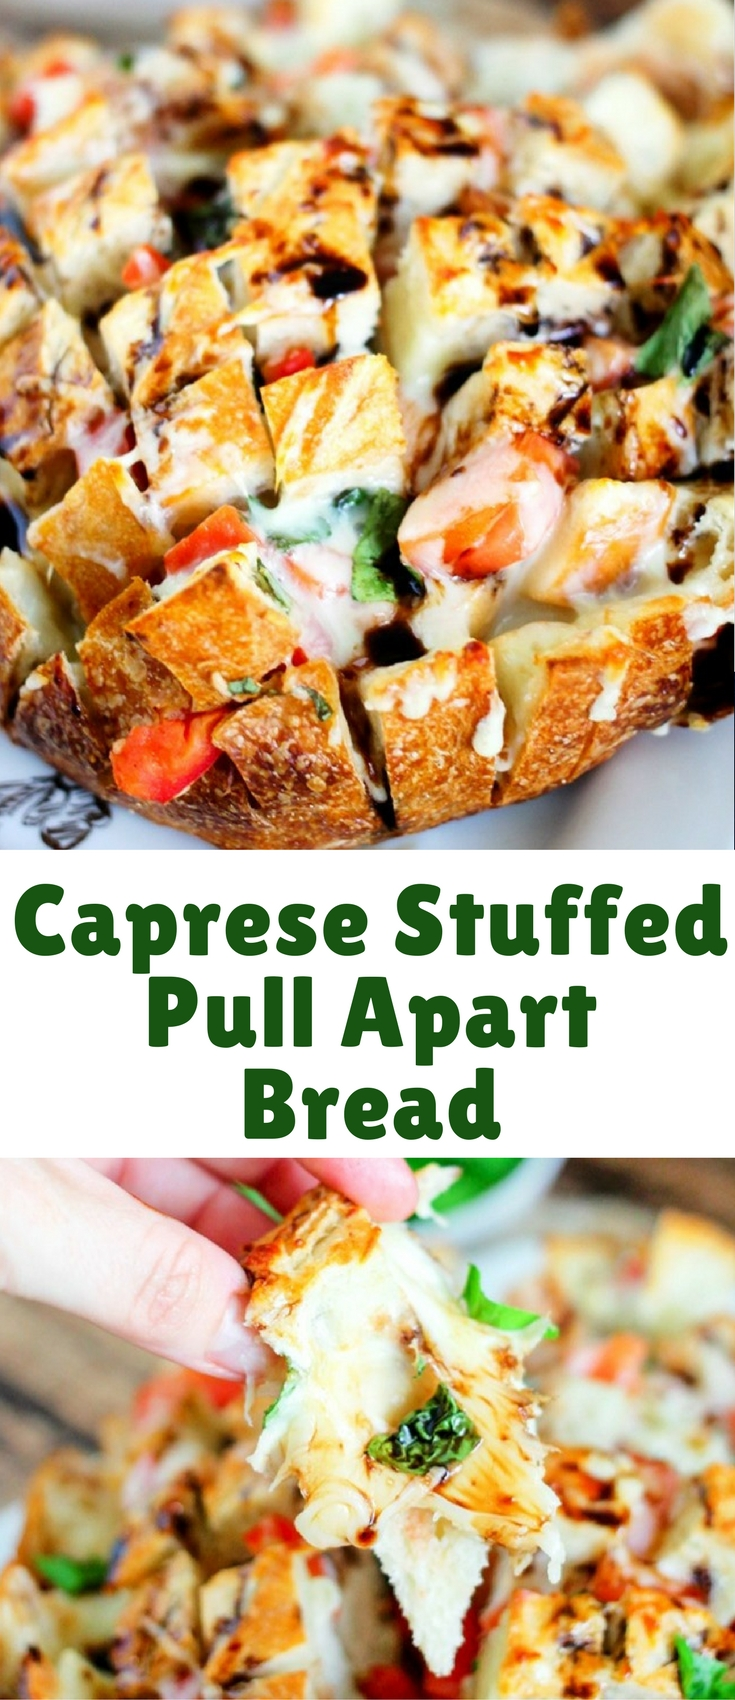 Caprese Stuffed Pull Apart Bread is fresh bread stuffed with delicious fresh tomatoes, basil, and mozzarella, then topped with a sweet and tangy balsamic glaze!